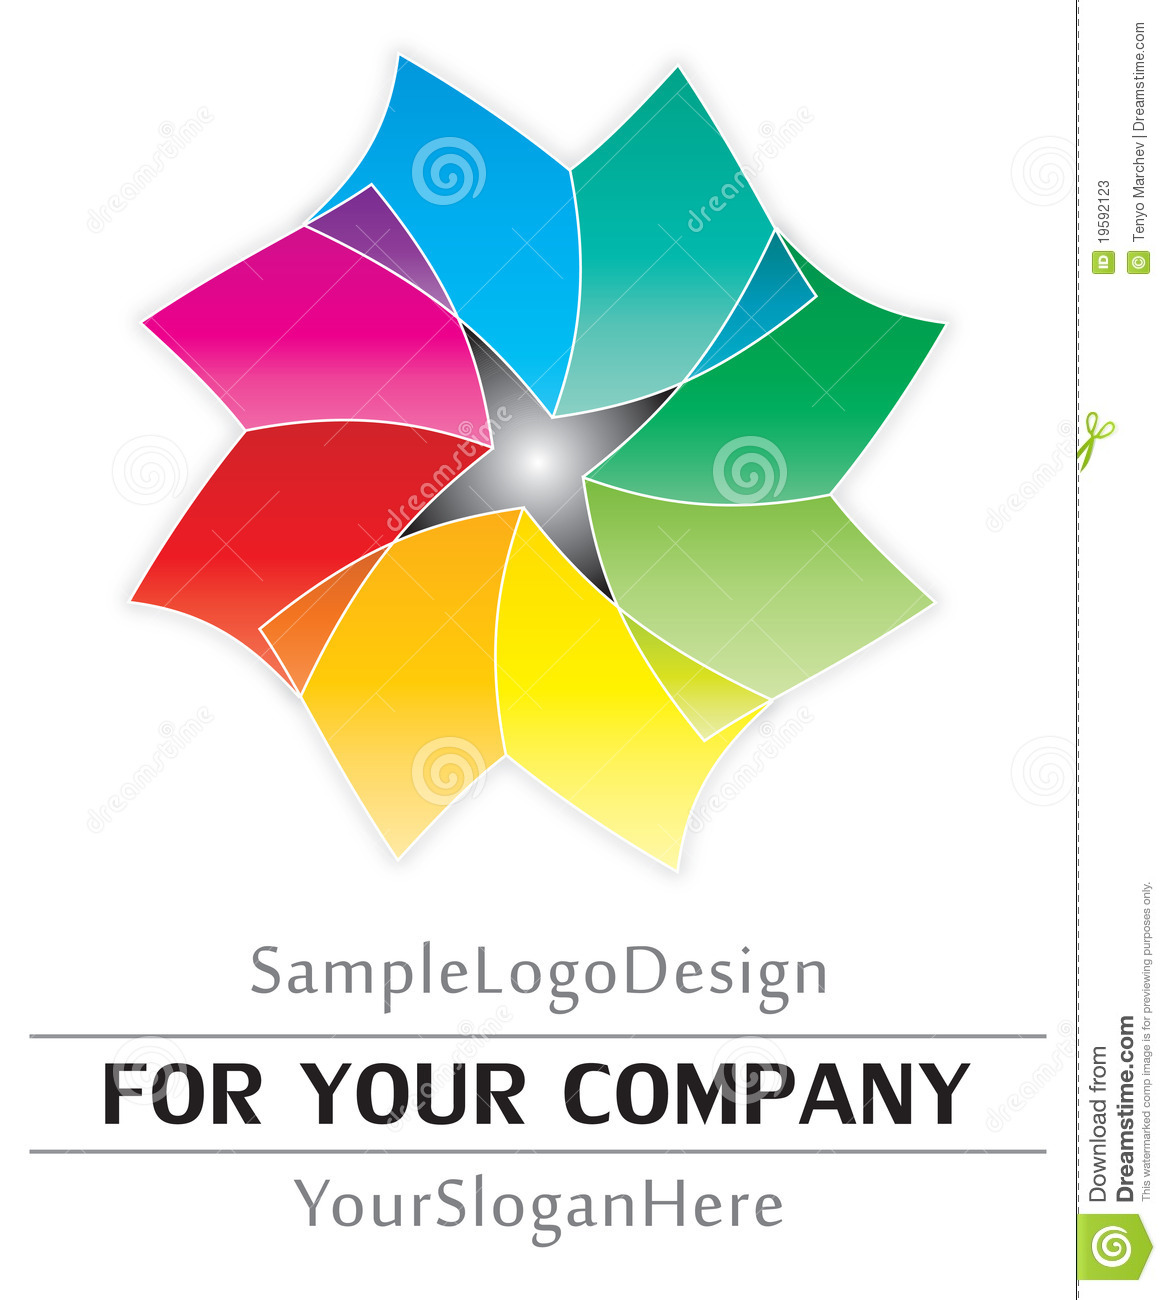 Top Logo Design » Corporate Logo Design Samples - Creative Logo ... for Corporate Logo Design Samples  545xkb